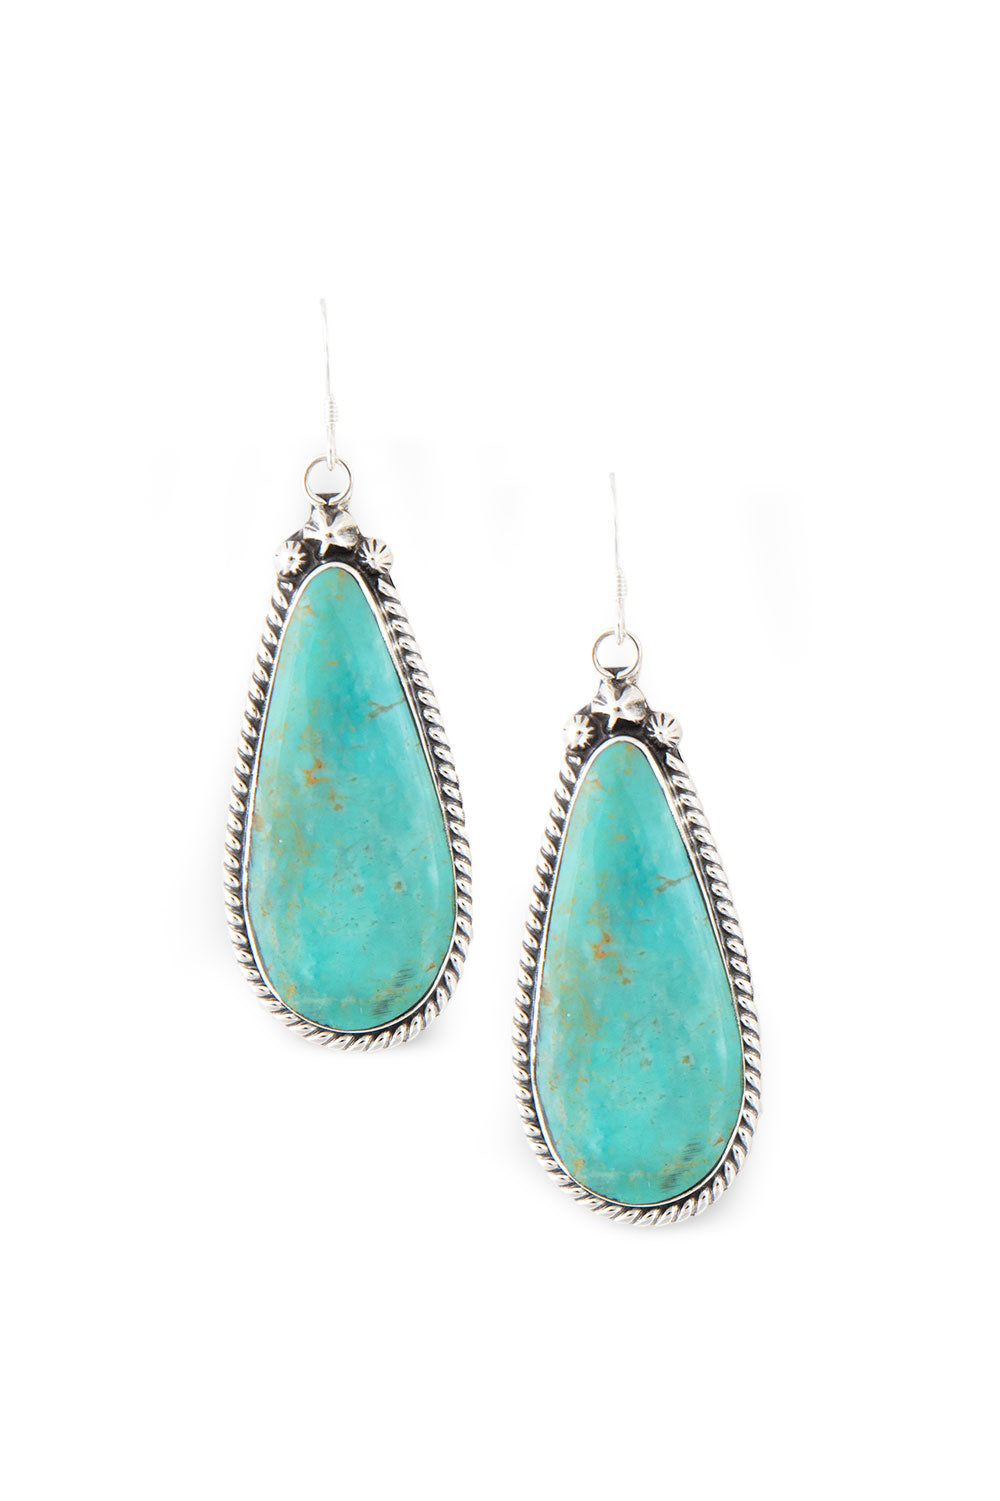 Earrings, Slab, Turquoise, Hallmark, 396-3